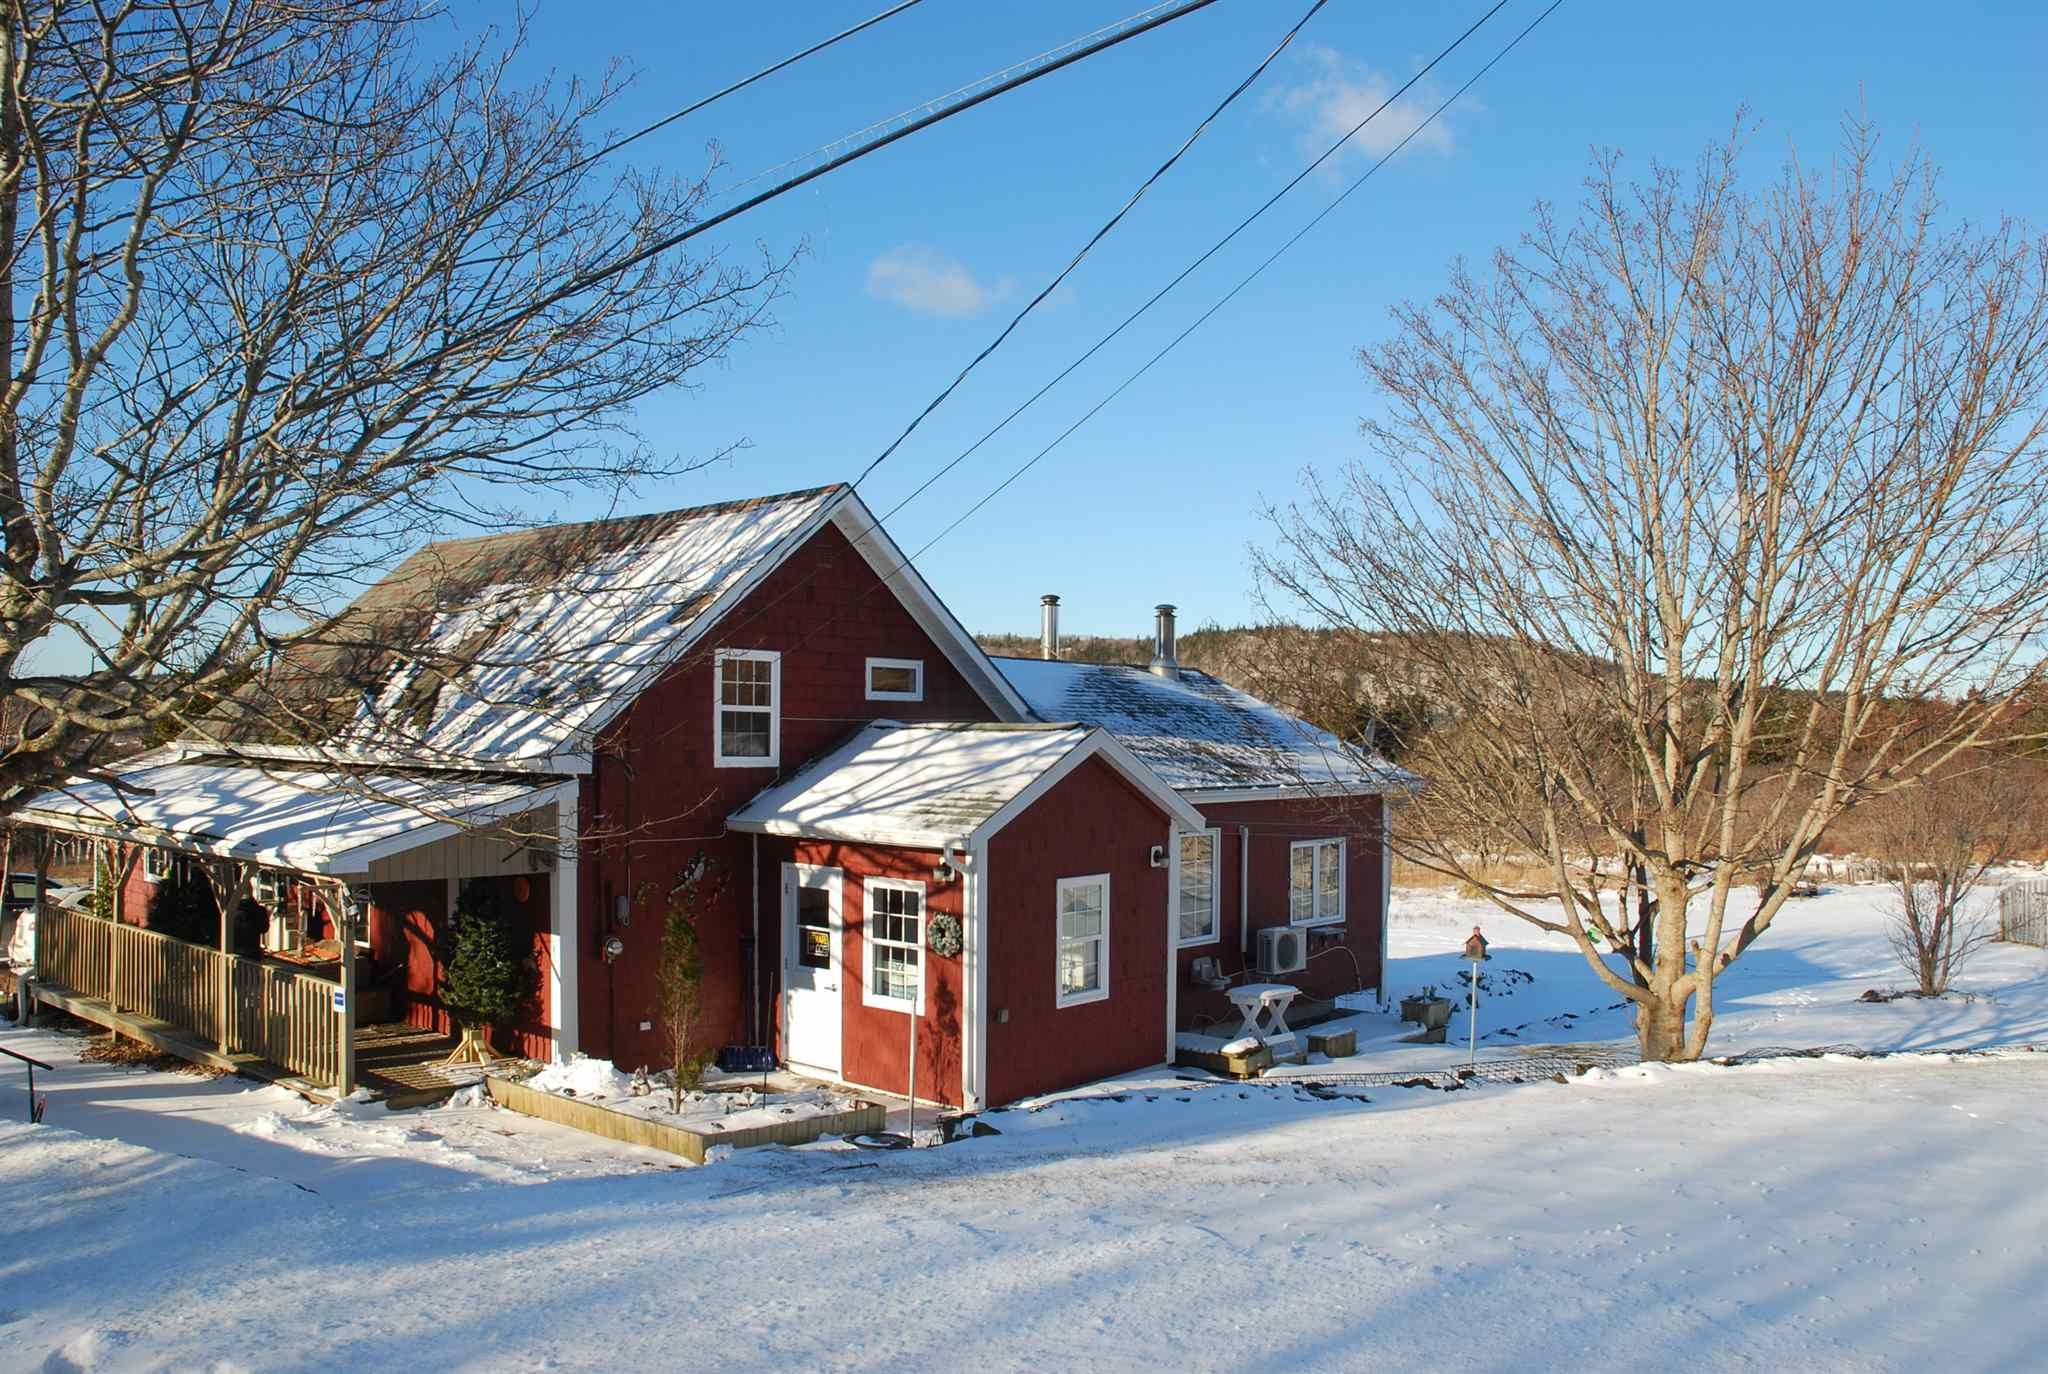 Main Photo: 6011 HIGHWAY 217 in Mink Cove: 401-Digby County Residential for sale (Annapolis Valley)  : MLS®# 202102243